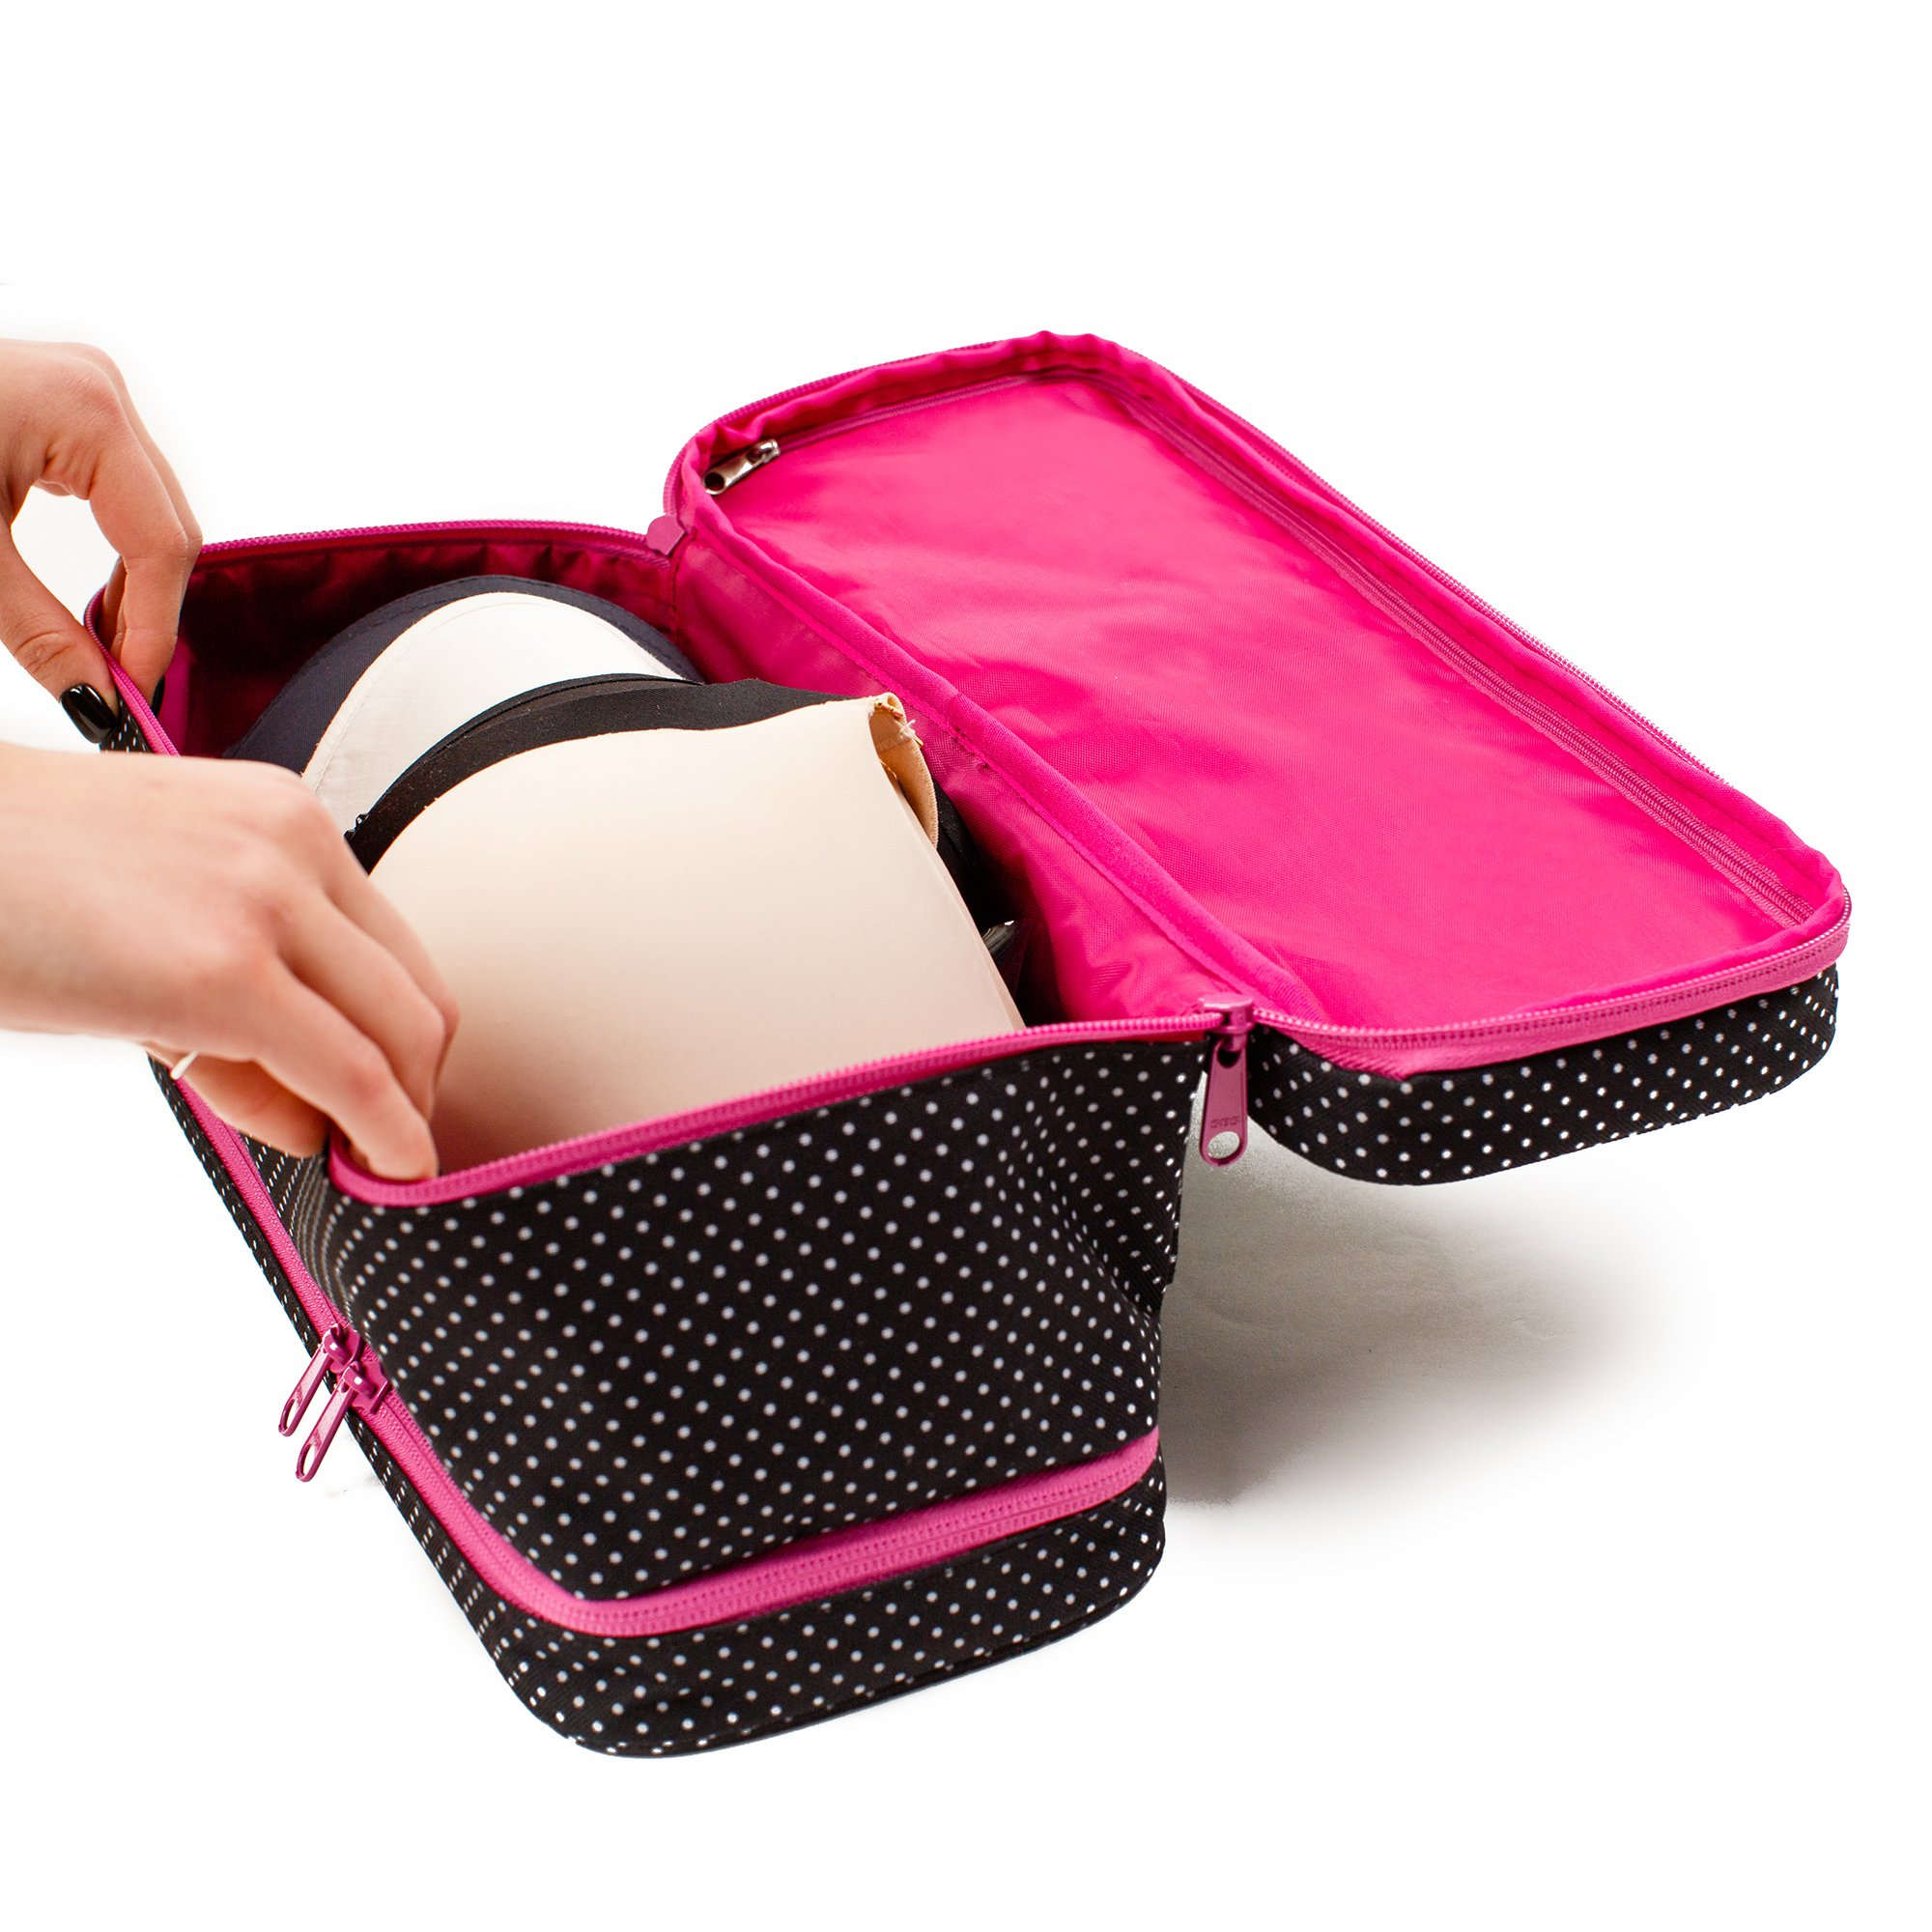 Large Travel Bra Organizer - Versatile Storage Bag For Women On Travel